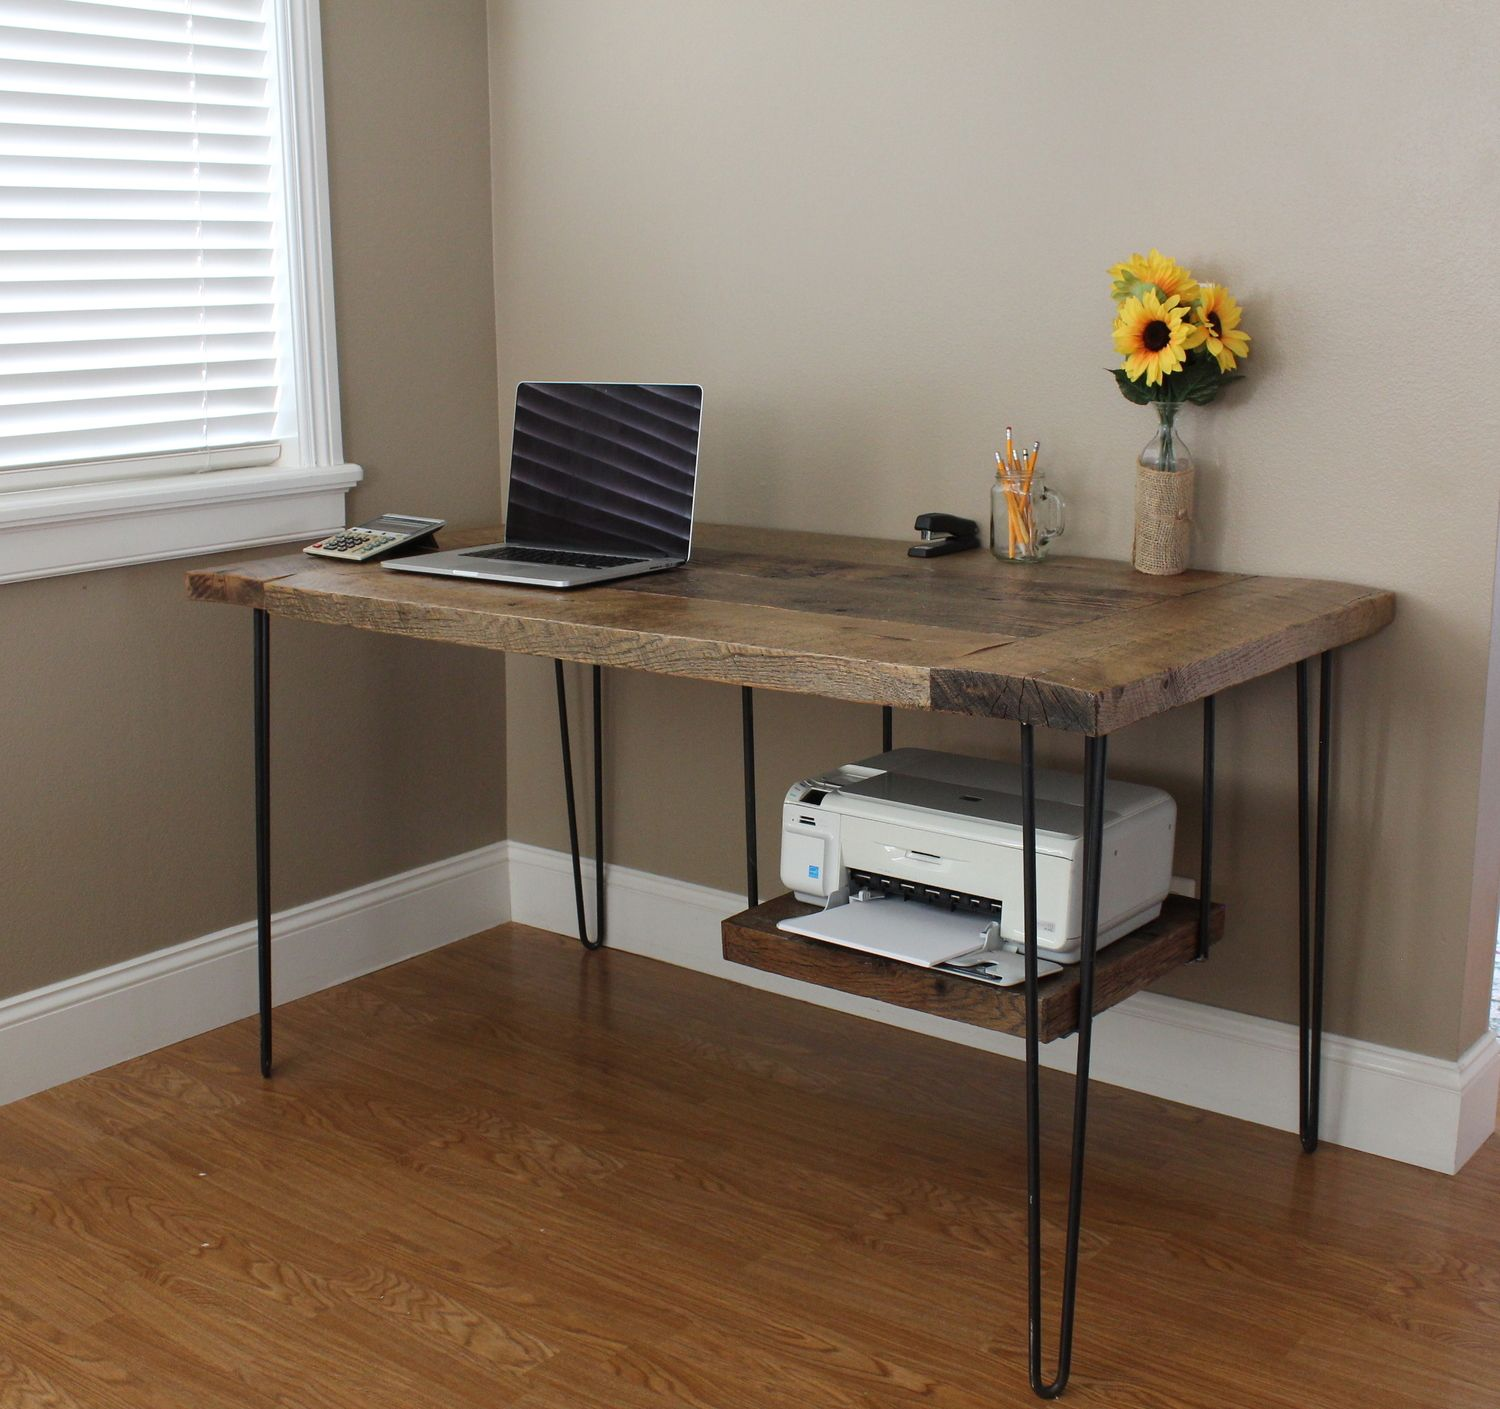 Reclaimed Oak modern desk This reclaimed oak desk features hairpin legs and a hanging printer shelf Custom built by Timber & Soul Wood top with metal